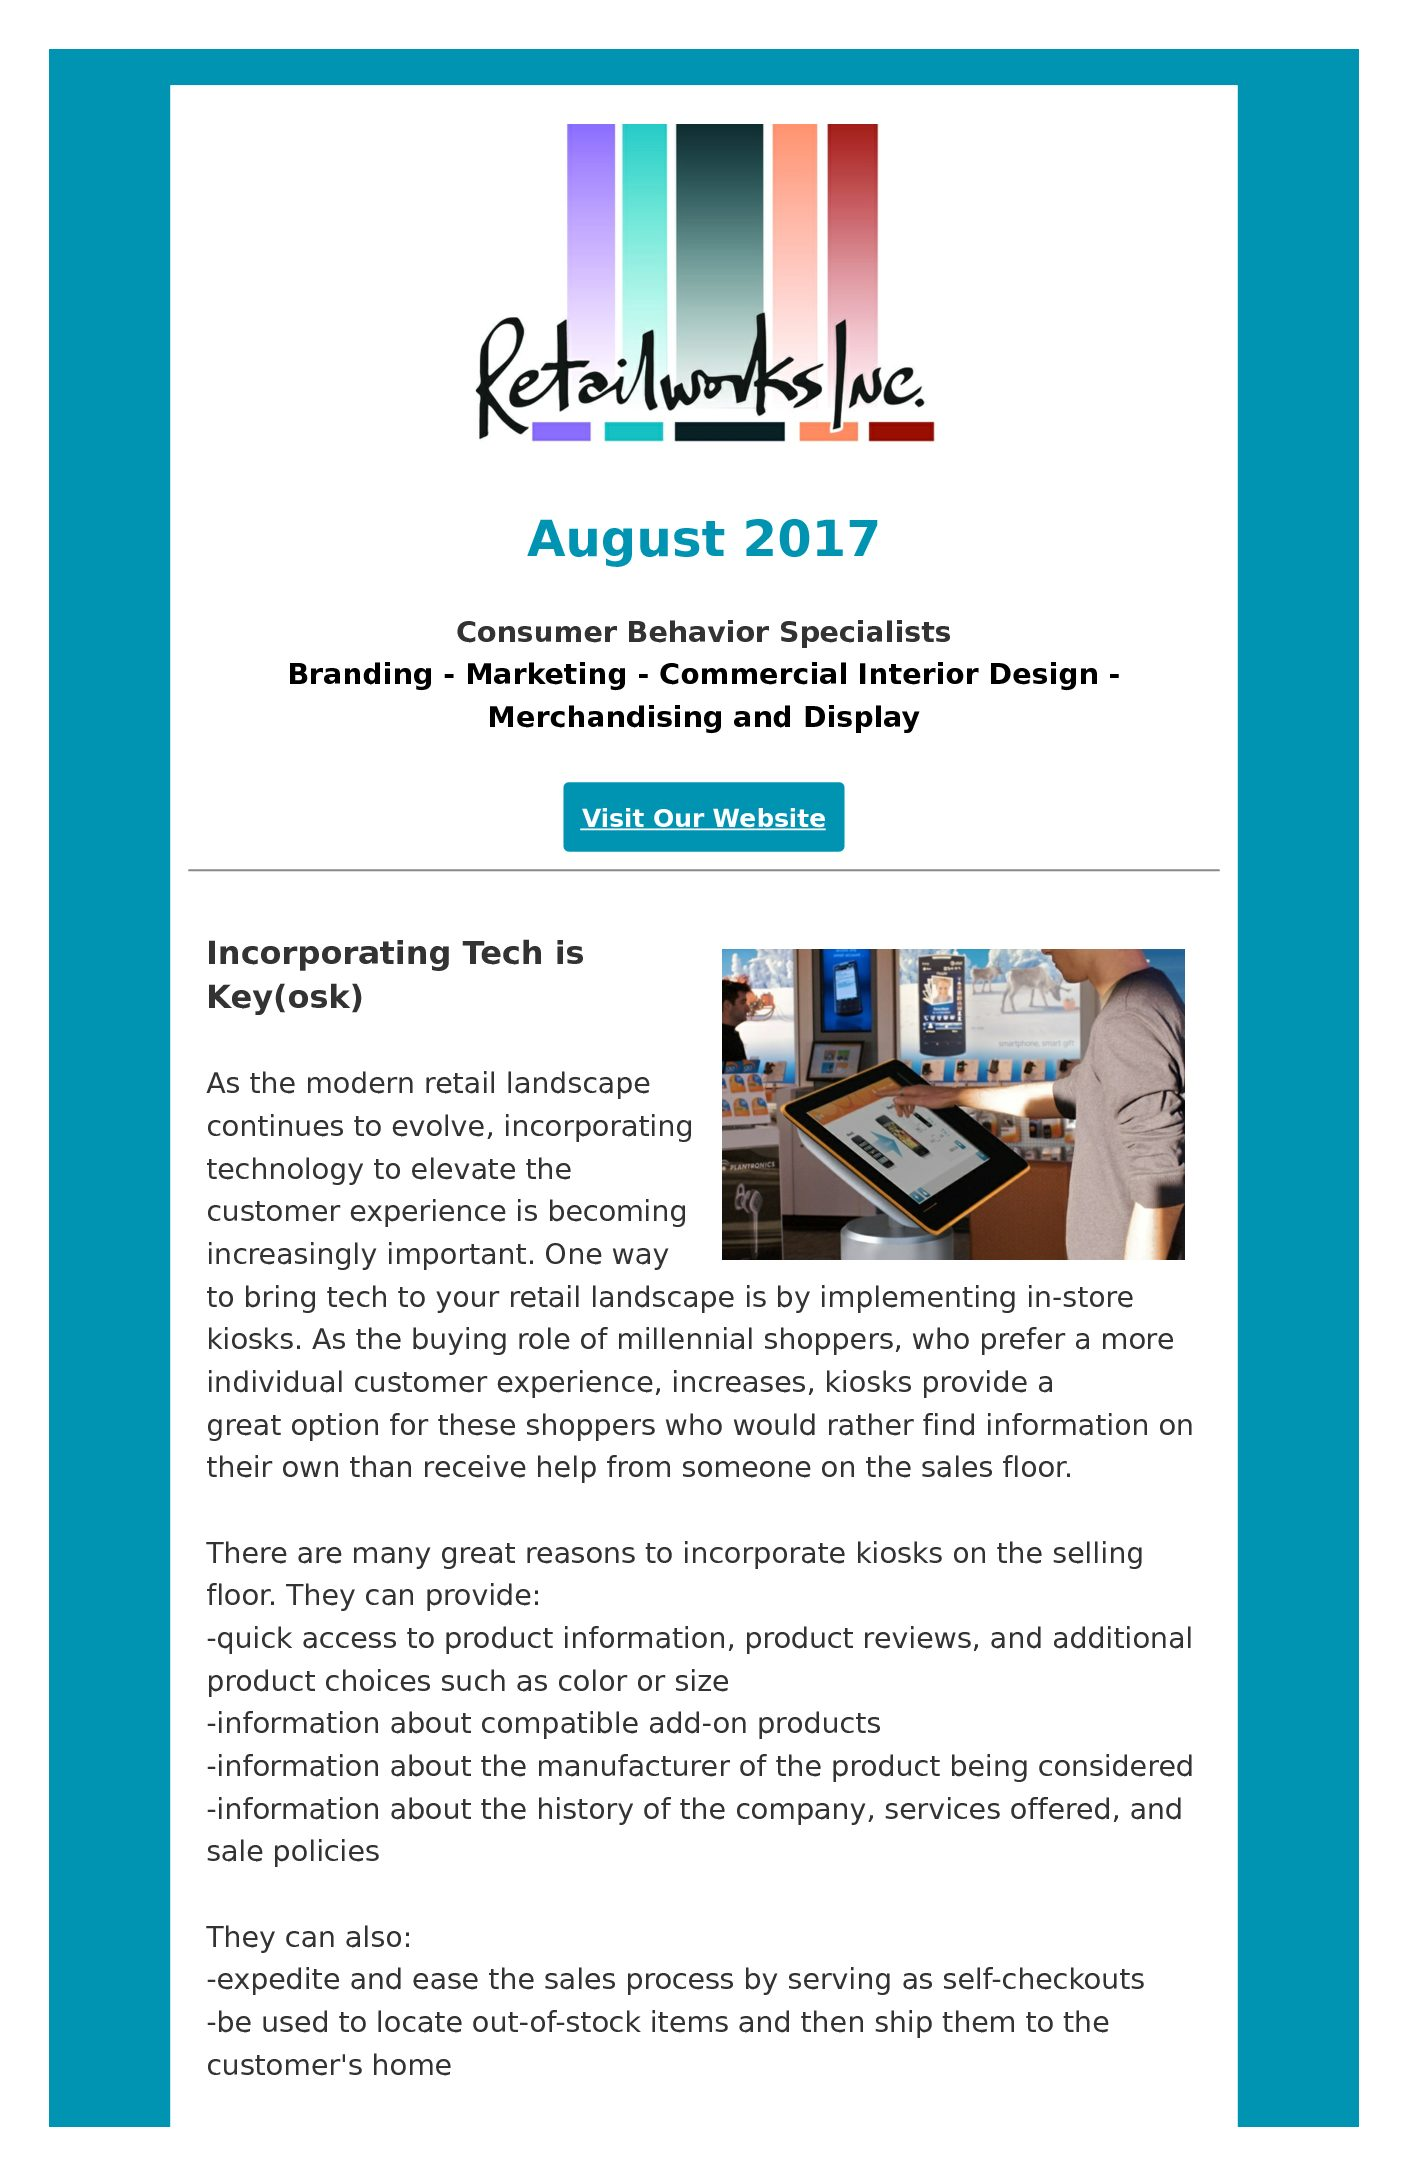 Newsletter - Retailworks Inc